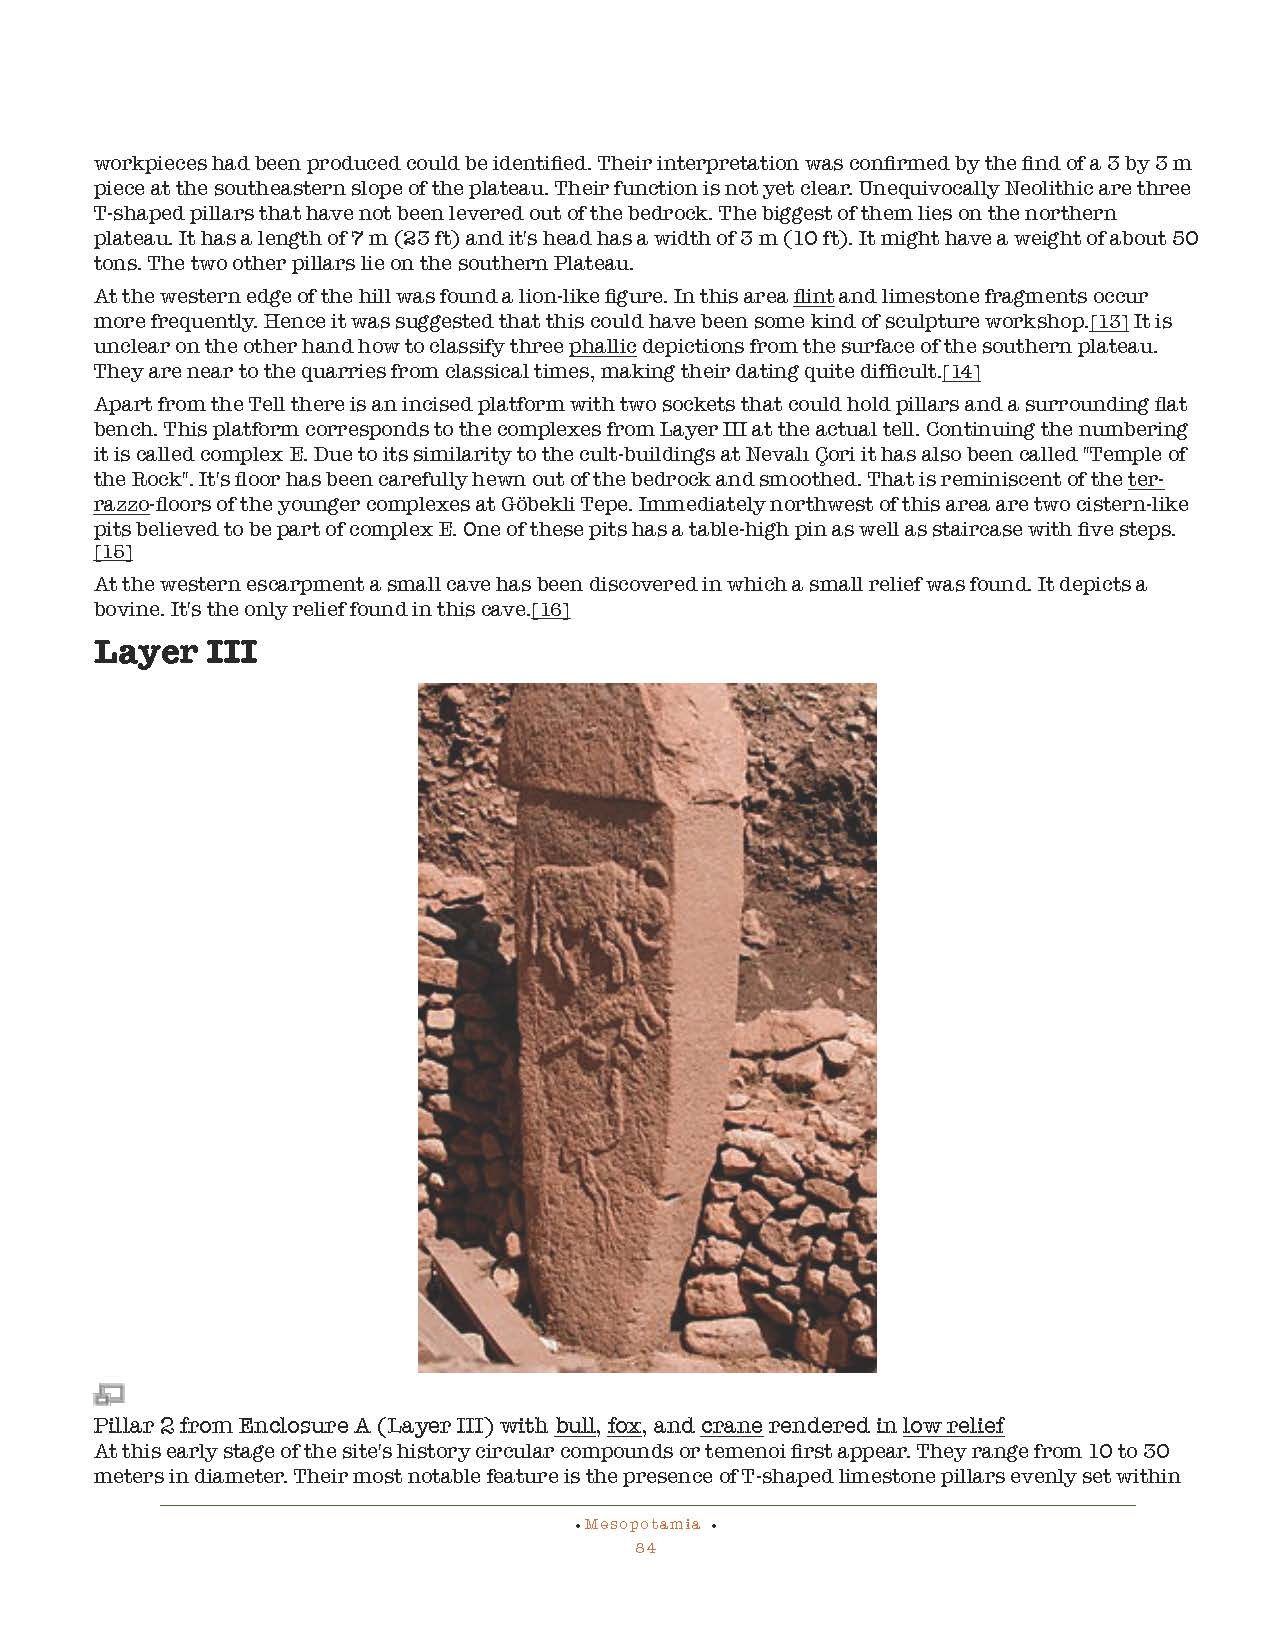 HOCE- Fertile Crescent Notes_Page_084.jpg